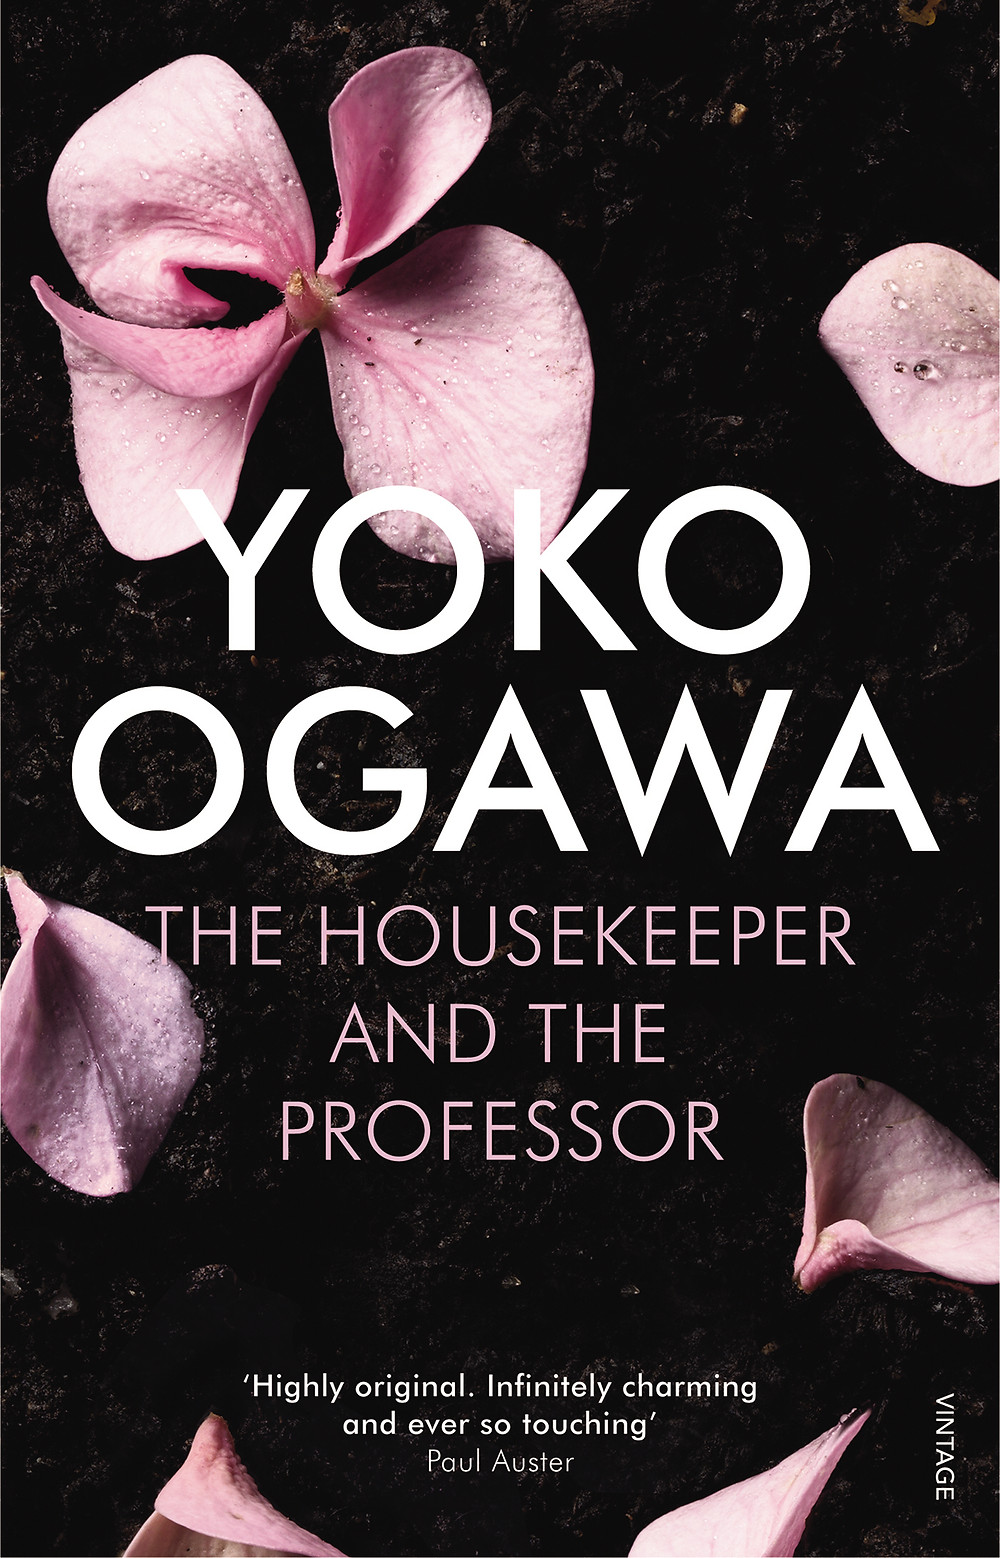 The Housekeeper and the Professor by Yoko Ogawa : the book slut book reviews thebookslut best floral book covers valentines day books